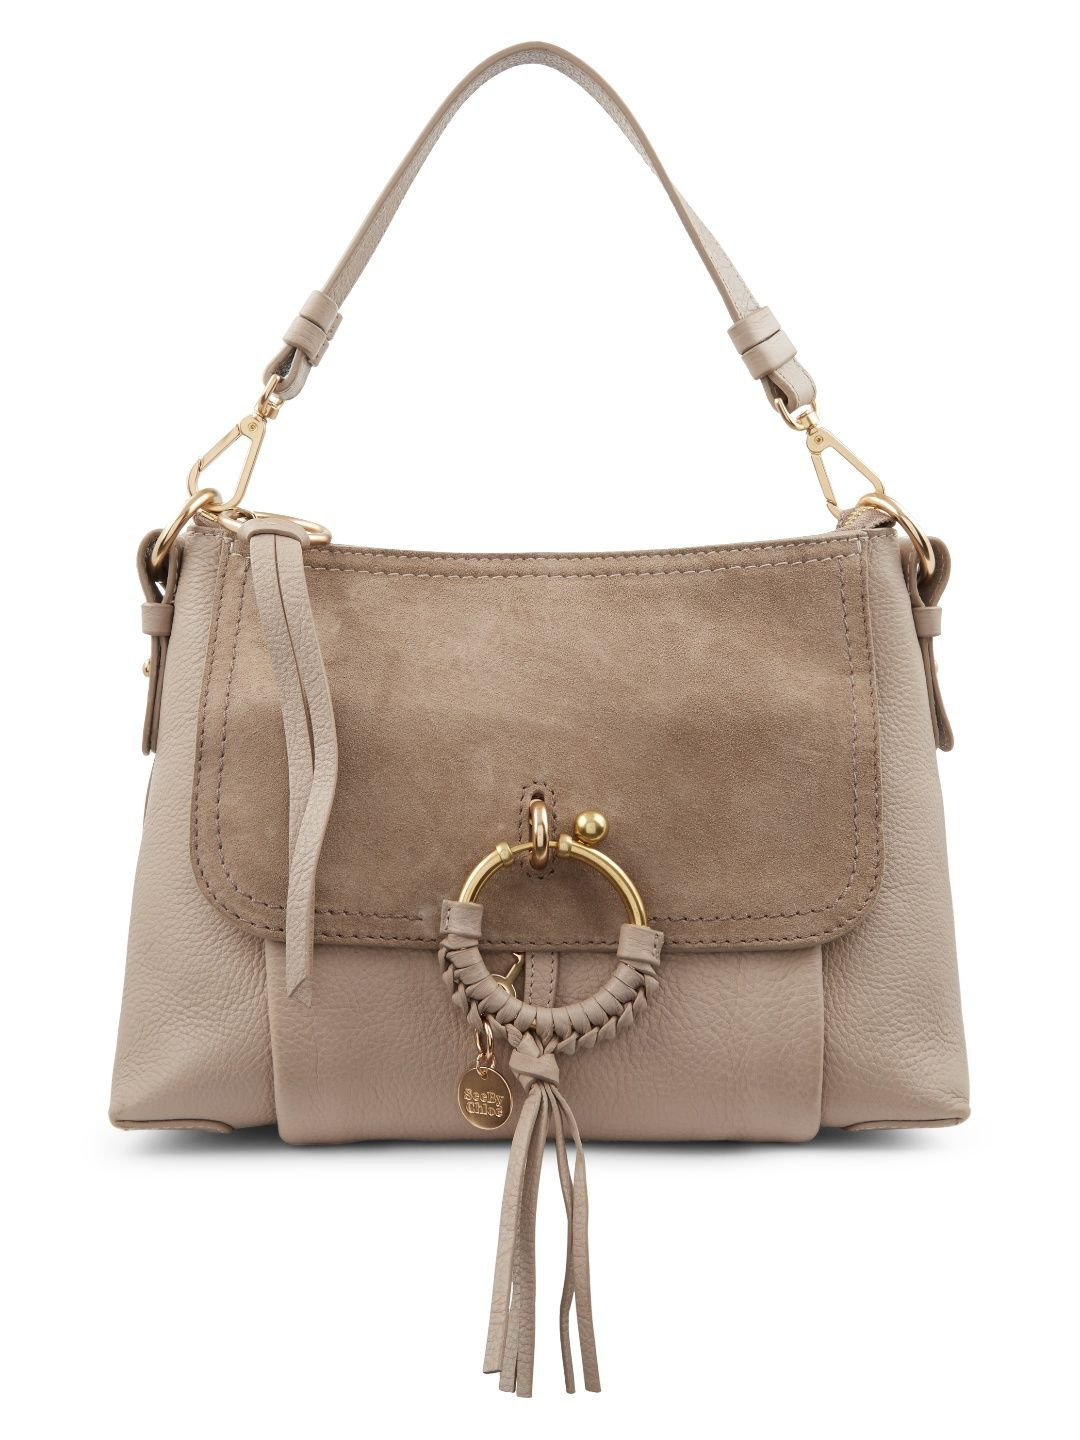 SEE BY CHLOÉ . #seebychloé #bags #shoulder bags #hand bags #lining #suede #cotton #